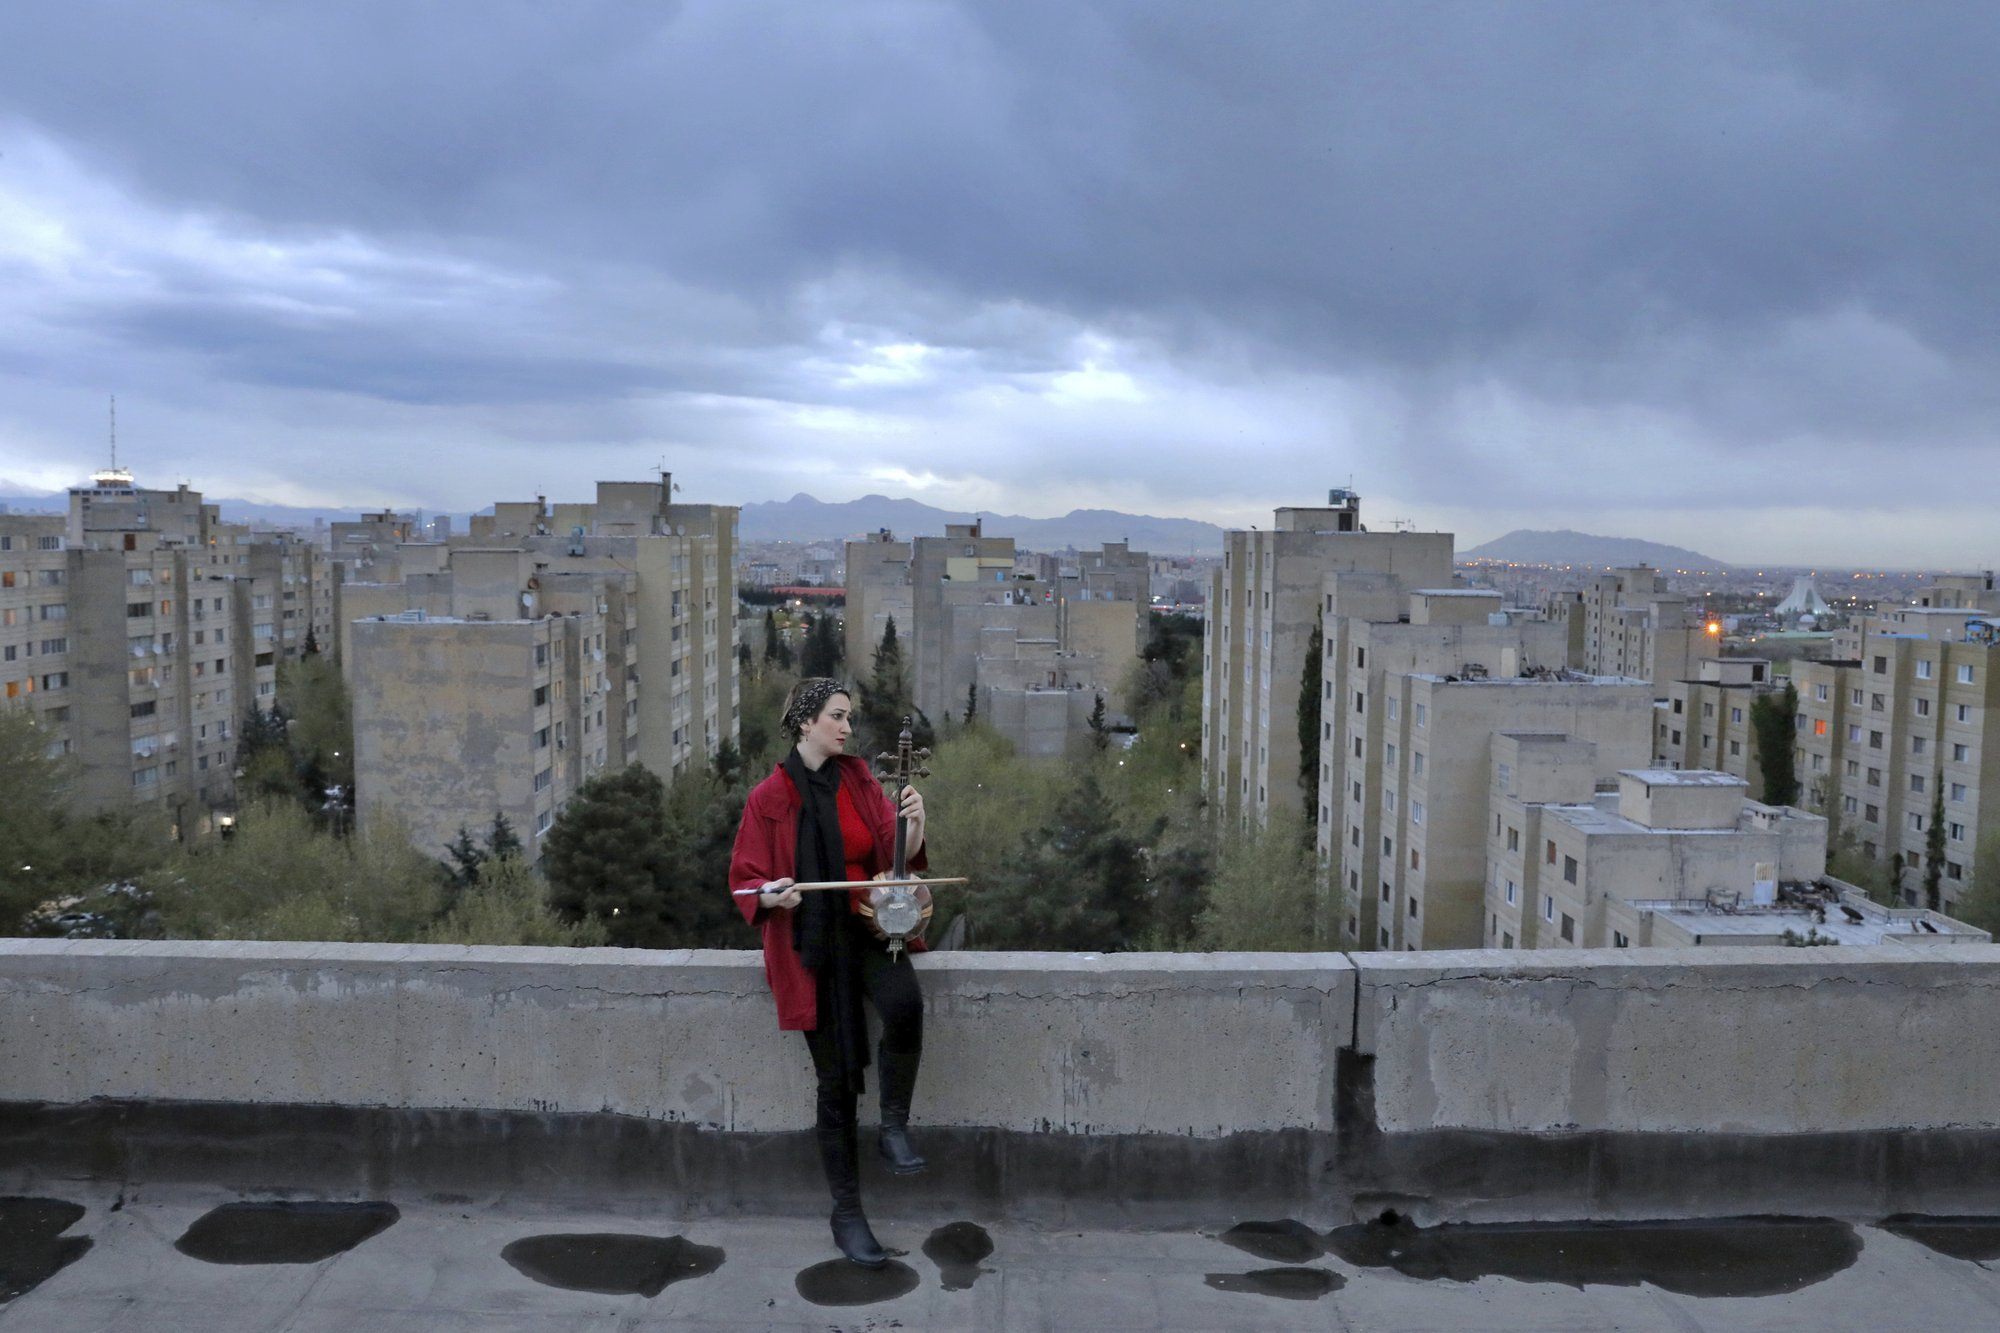 Musician Shiva Abedi, 30, plays kamancheh on the roof of her home during mandatory self-isolation due to the n during mandatory self-isolation due to the new coronavirus disease outbreak, in Tehran Iran. (AP Photo/Ebrahim Noroozi)